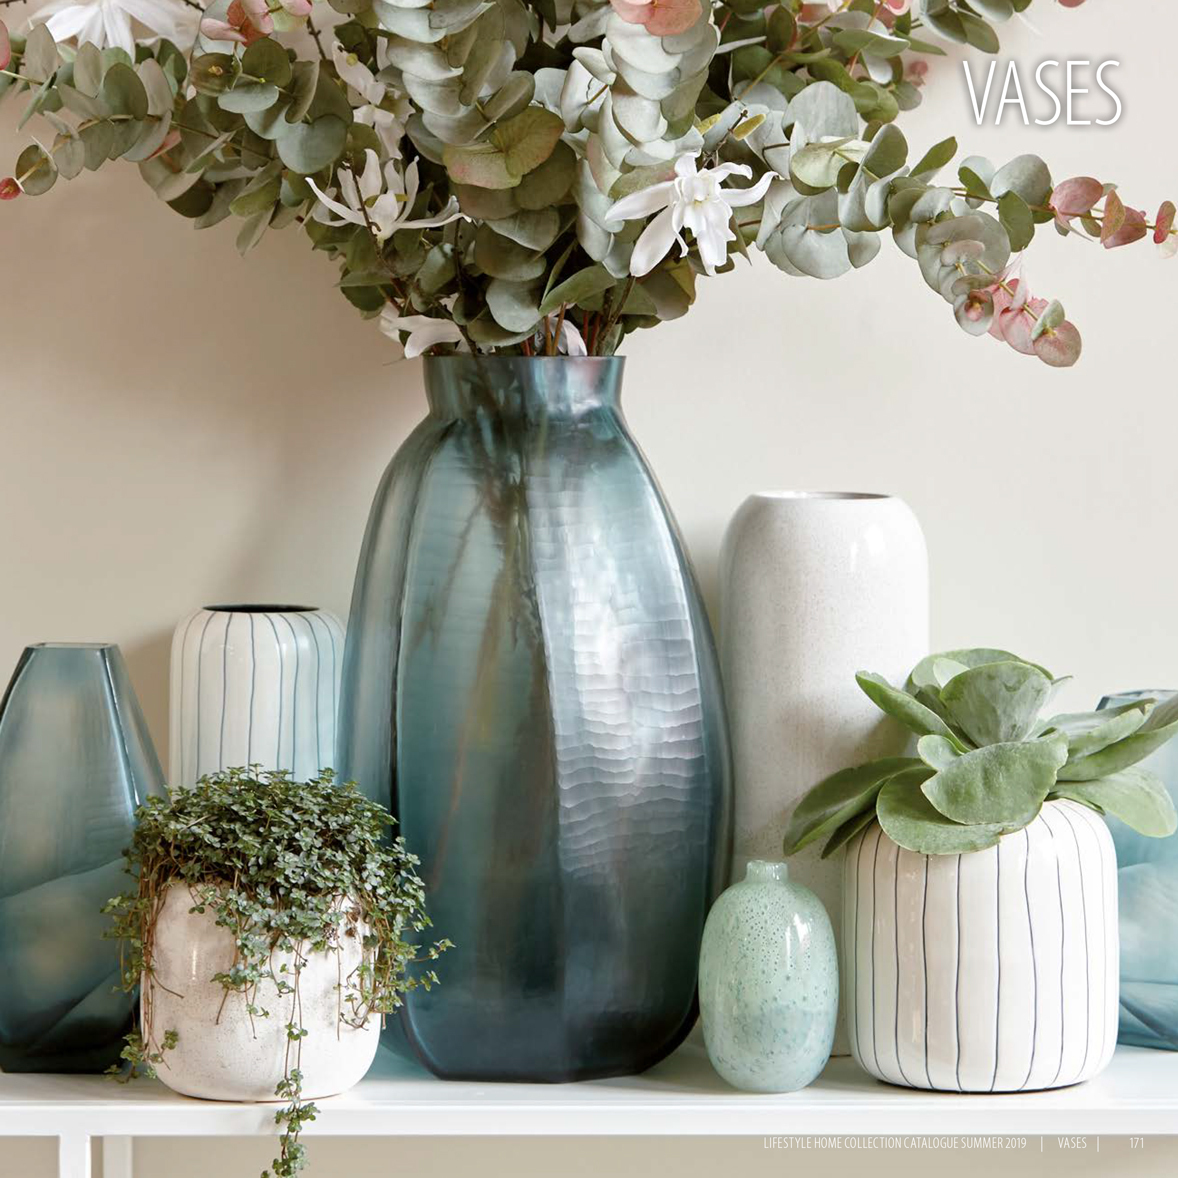 Vases » LifeStyle - Home Collection